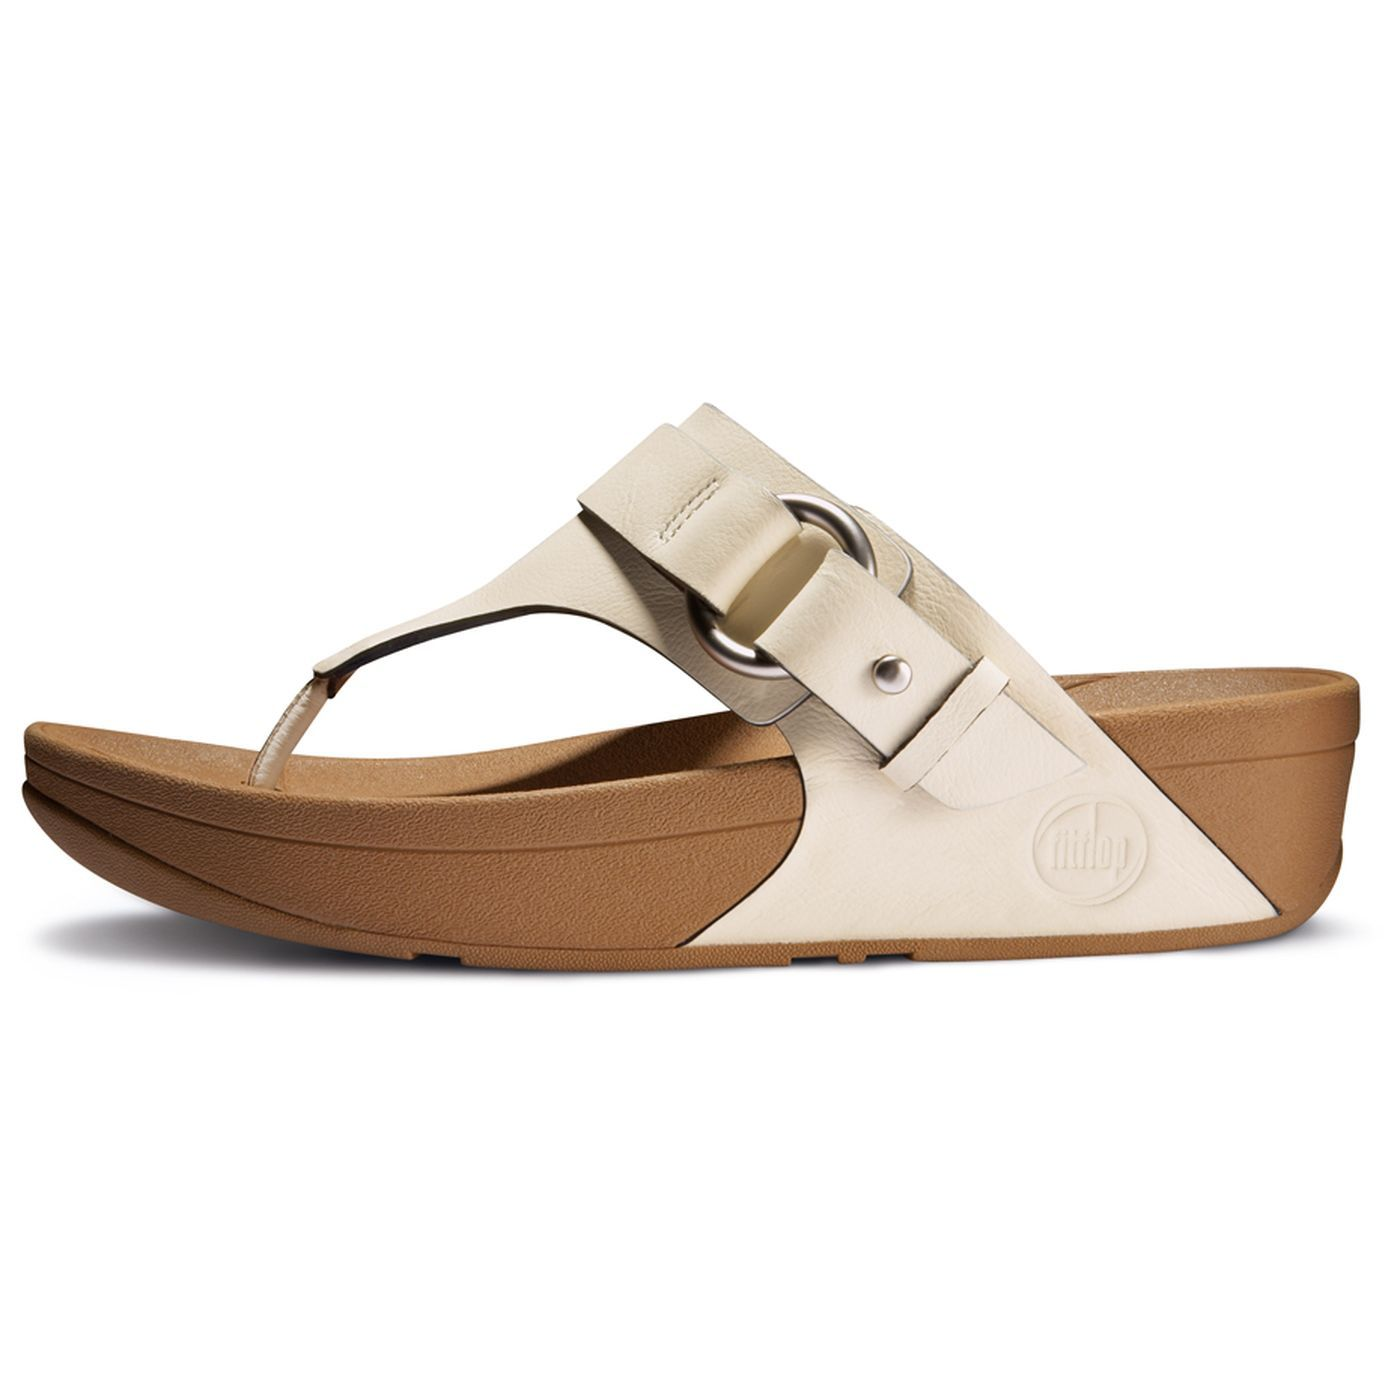 fitflop sale sandals